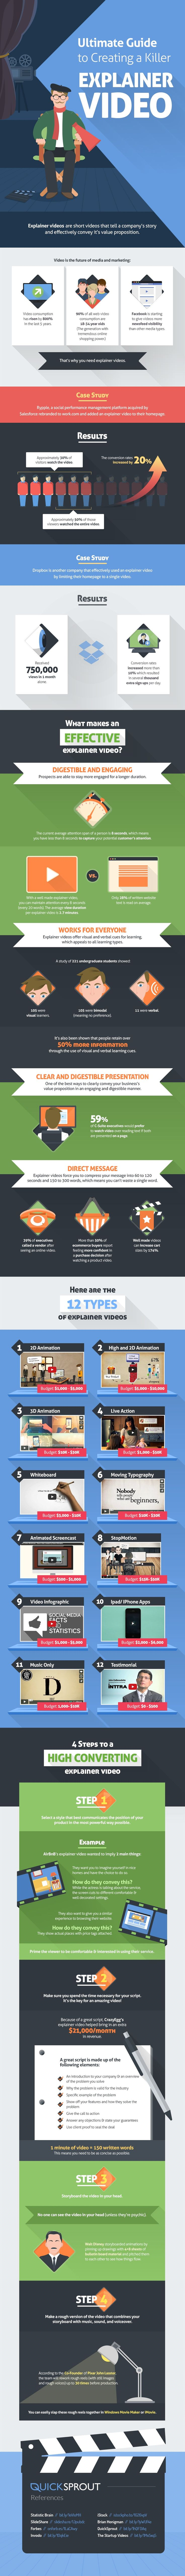 Holy Guide to Creating an Explainer #Video - #infographics #marketing #shortvideos #explainervideos